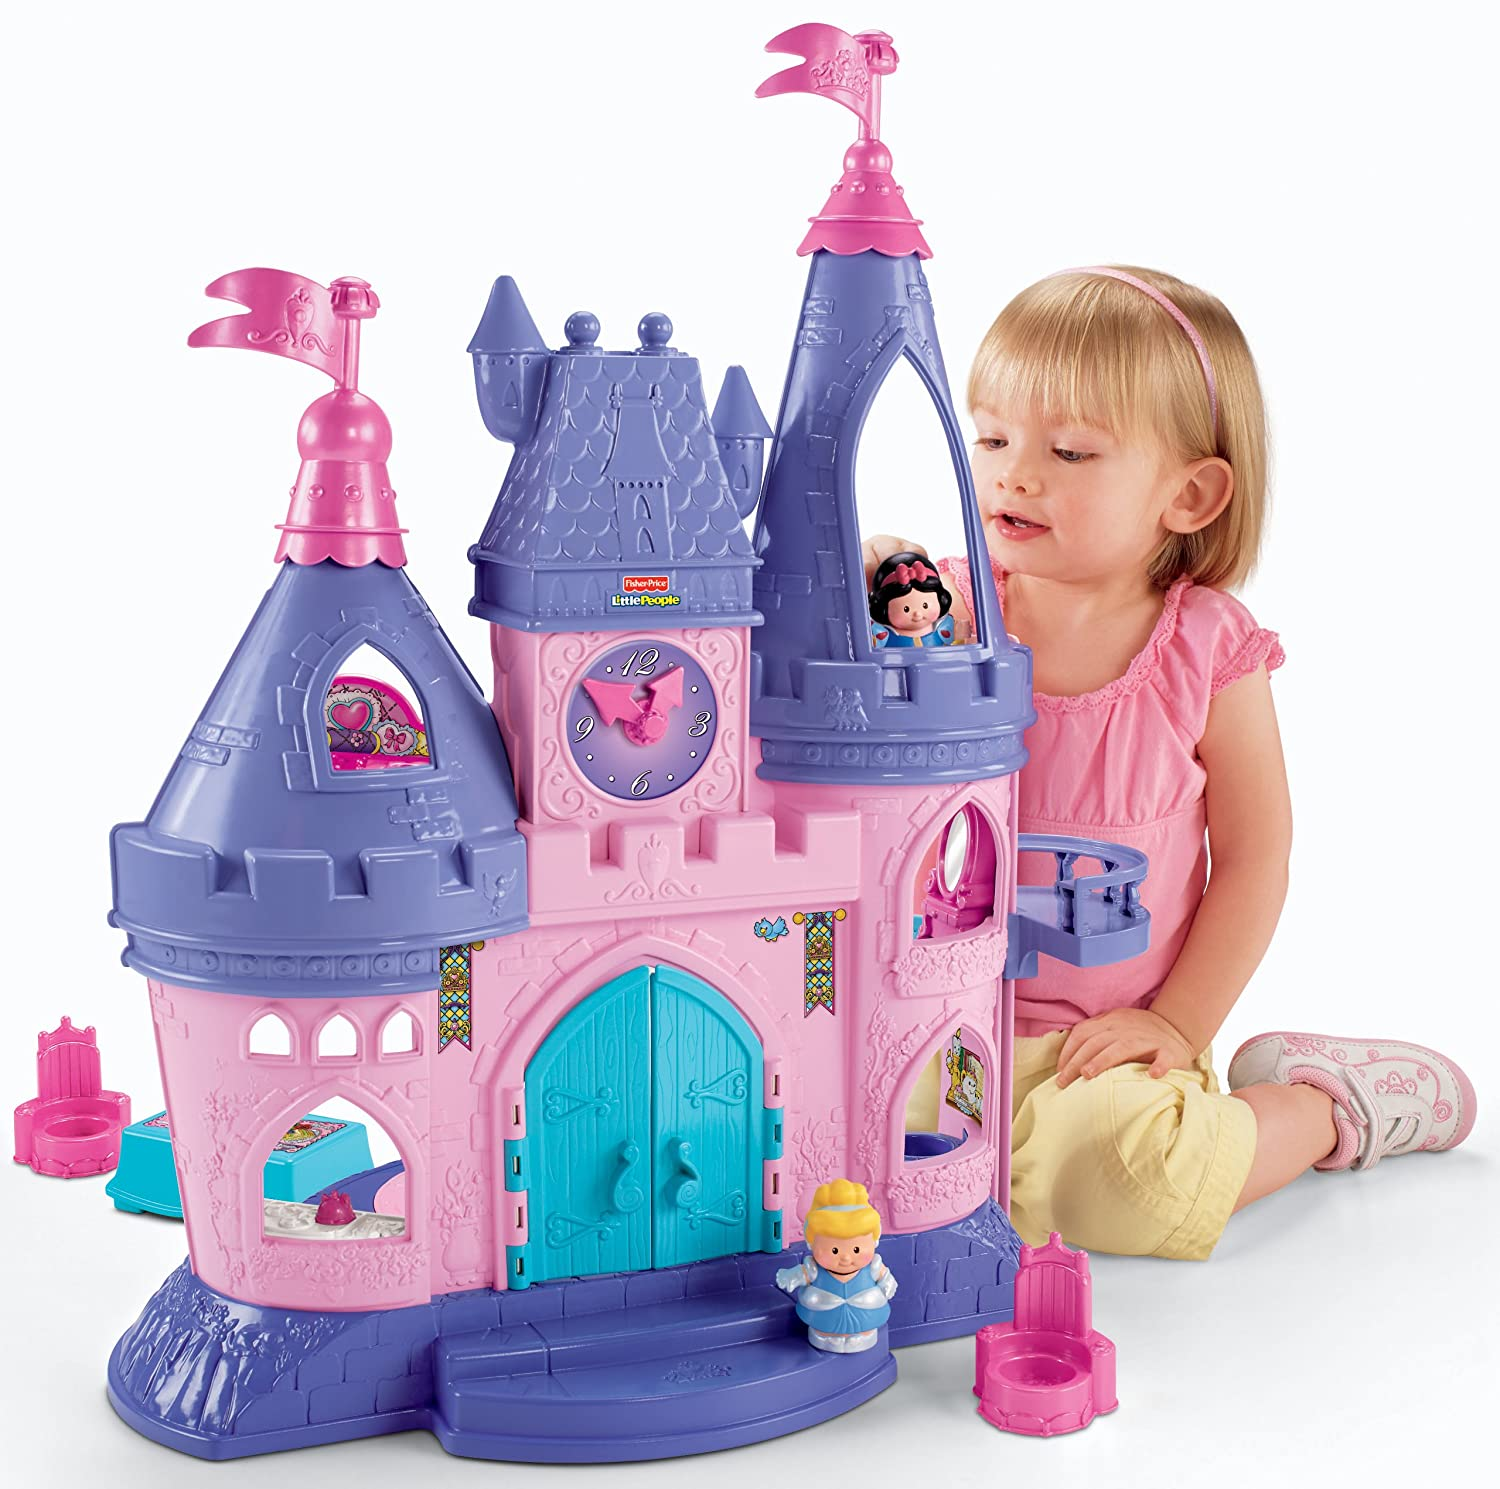 Top Toys For Girls Age 2 : Best gifts for year old girls in itsy bitsy fun